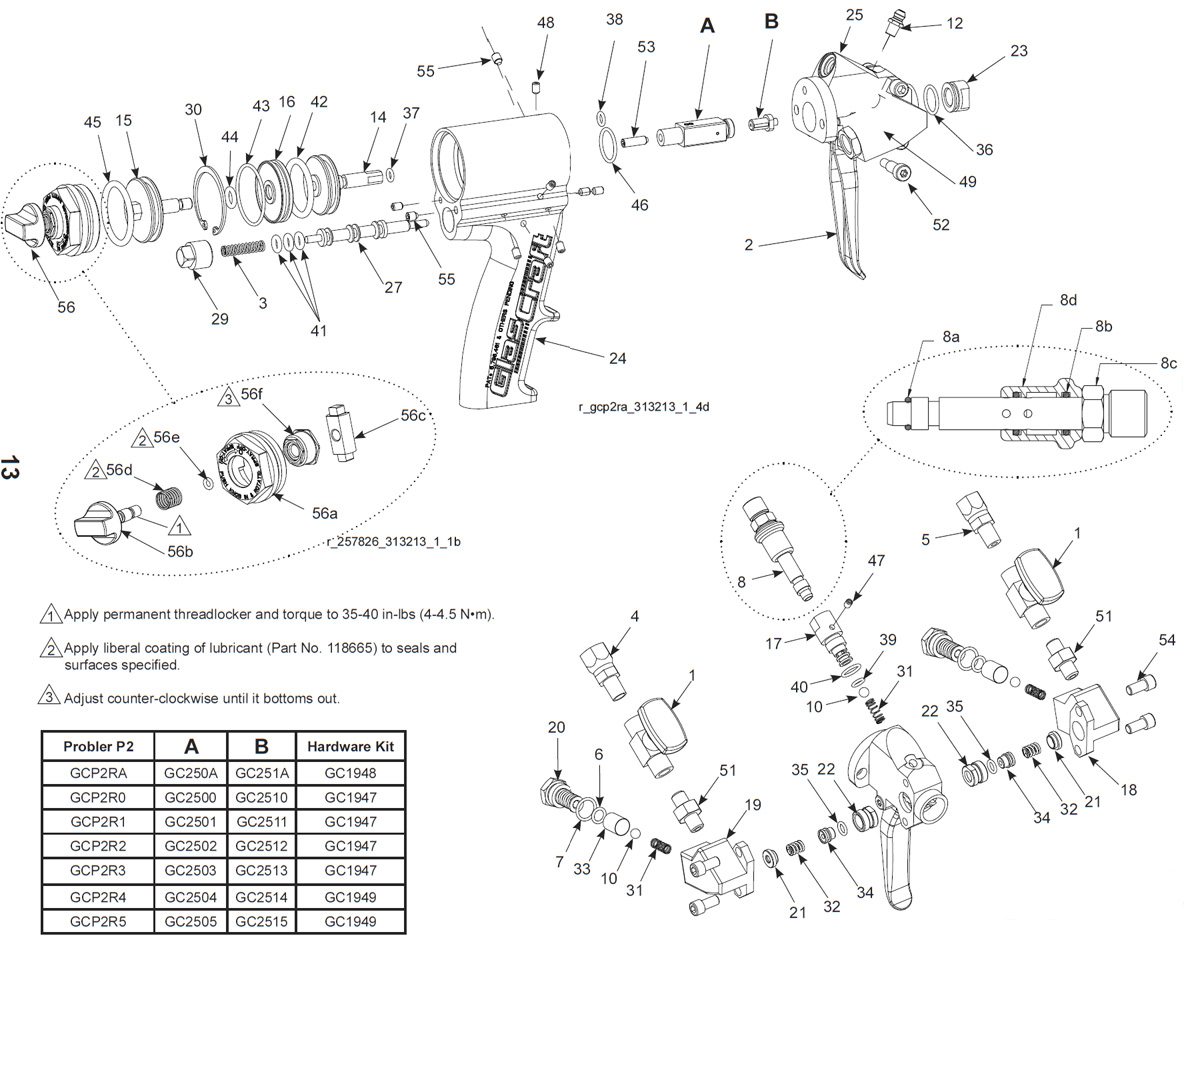 Wiring Diagram For 1973 Vw Transporter as well Festiva Wiring Diagram as well Build A V8 Beetle Bug moreover Custom Chevy Truck Parts And Accessories moreover Toyota Rav4 Drivetrain Diagram. on build a v8 beetle bug